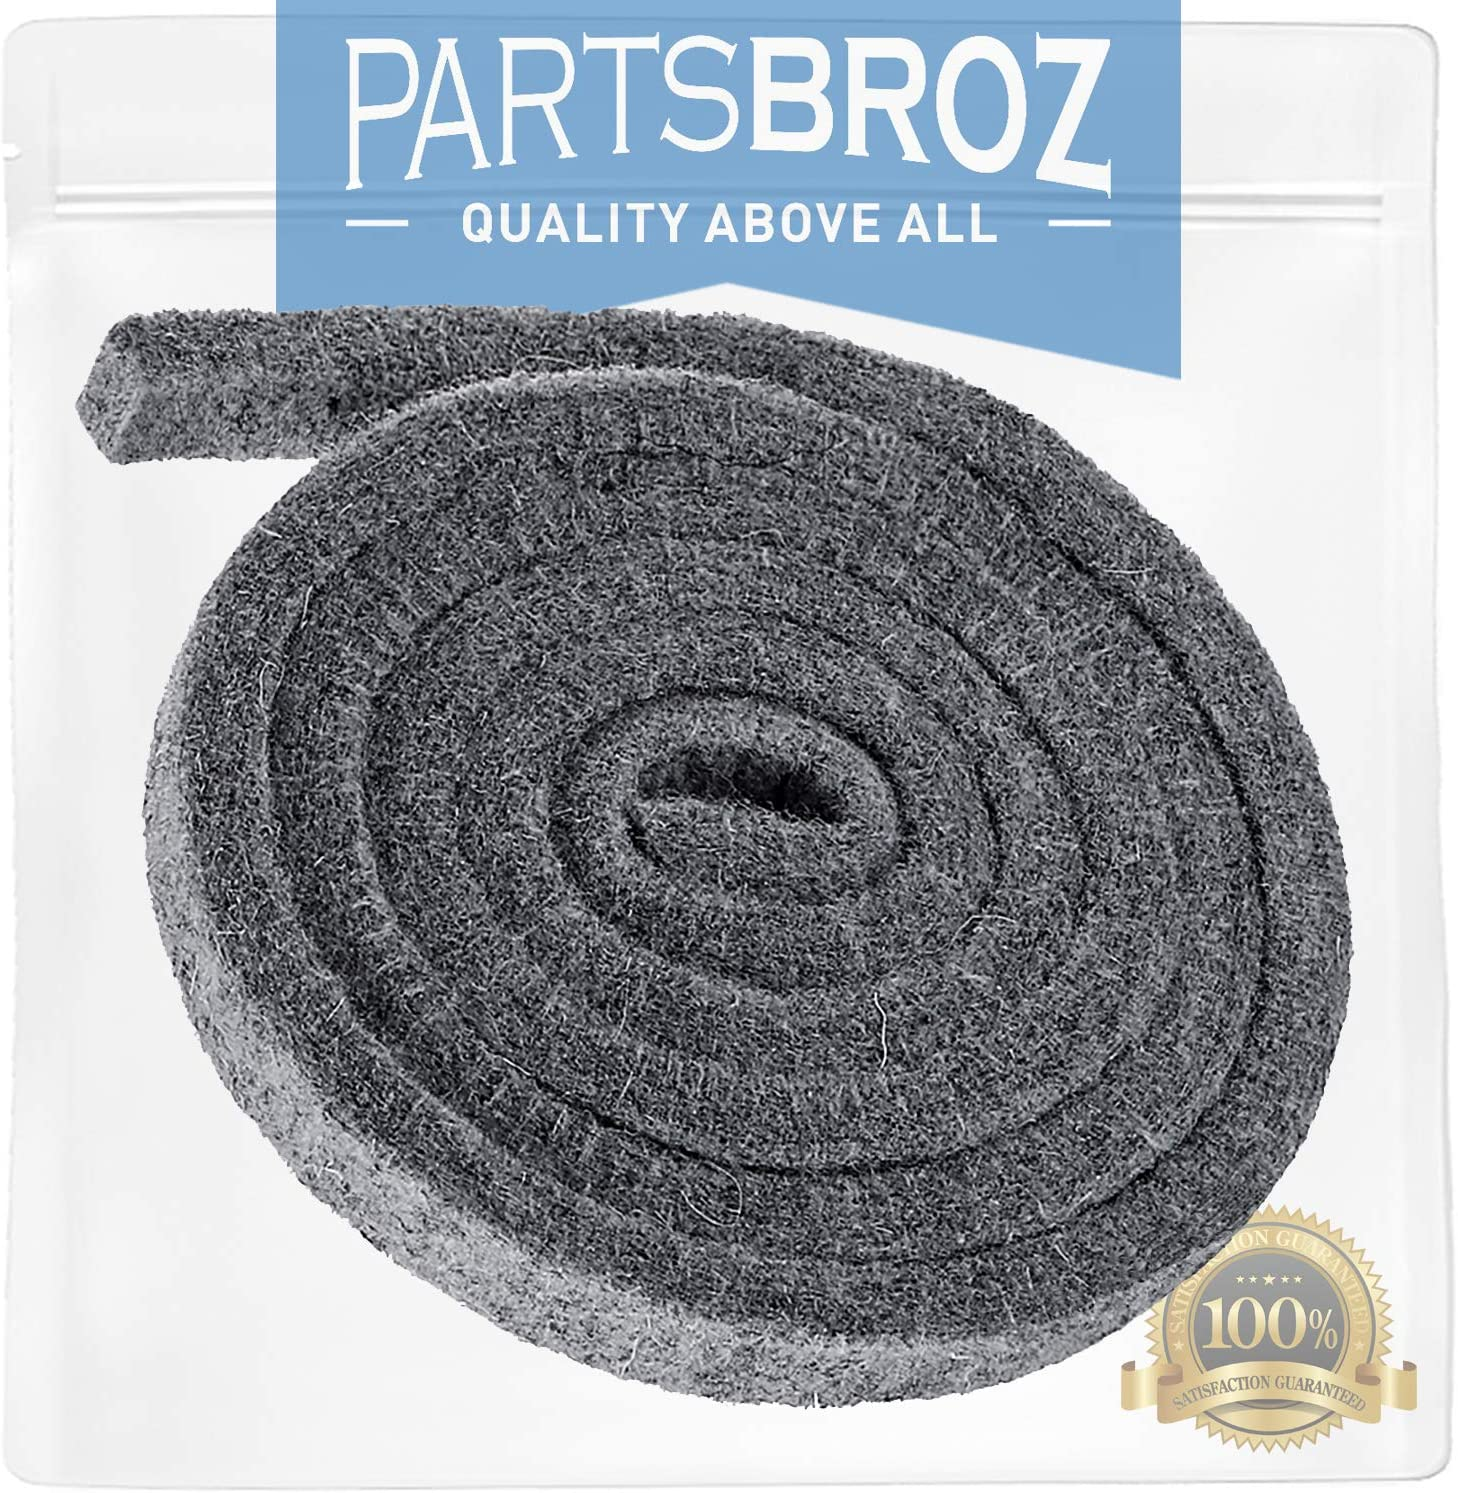 WE09X20441 Felt Trap Duct for GE Dryers by PartsBroz - Replaces Part Numbers AP5949286, WE9M30, 3290413, PS9861764, WE09M0015, WE9M15